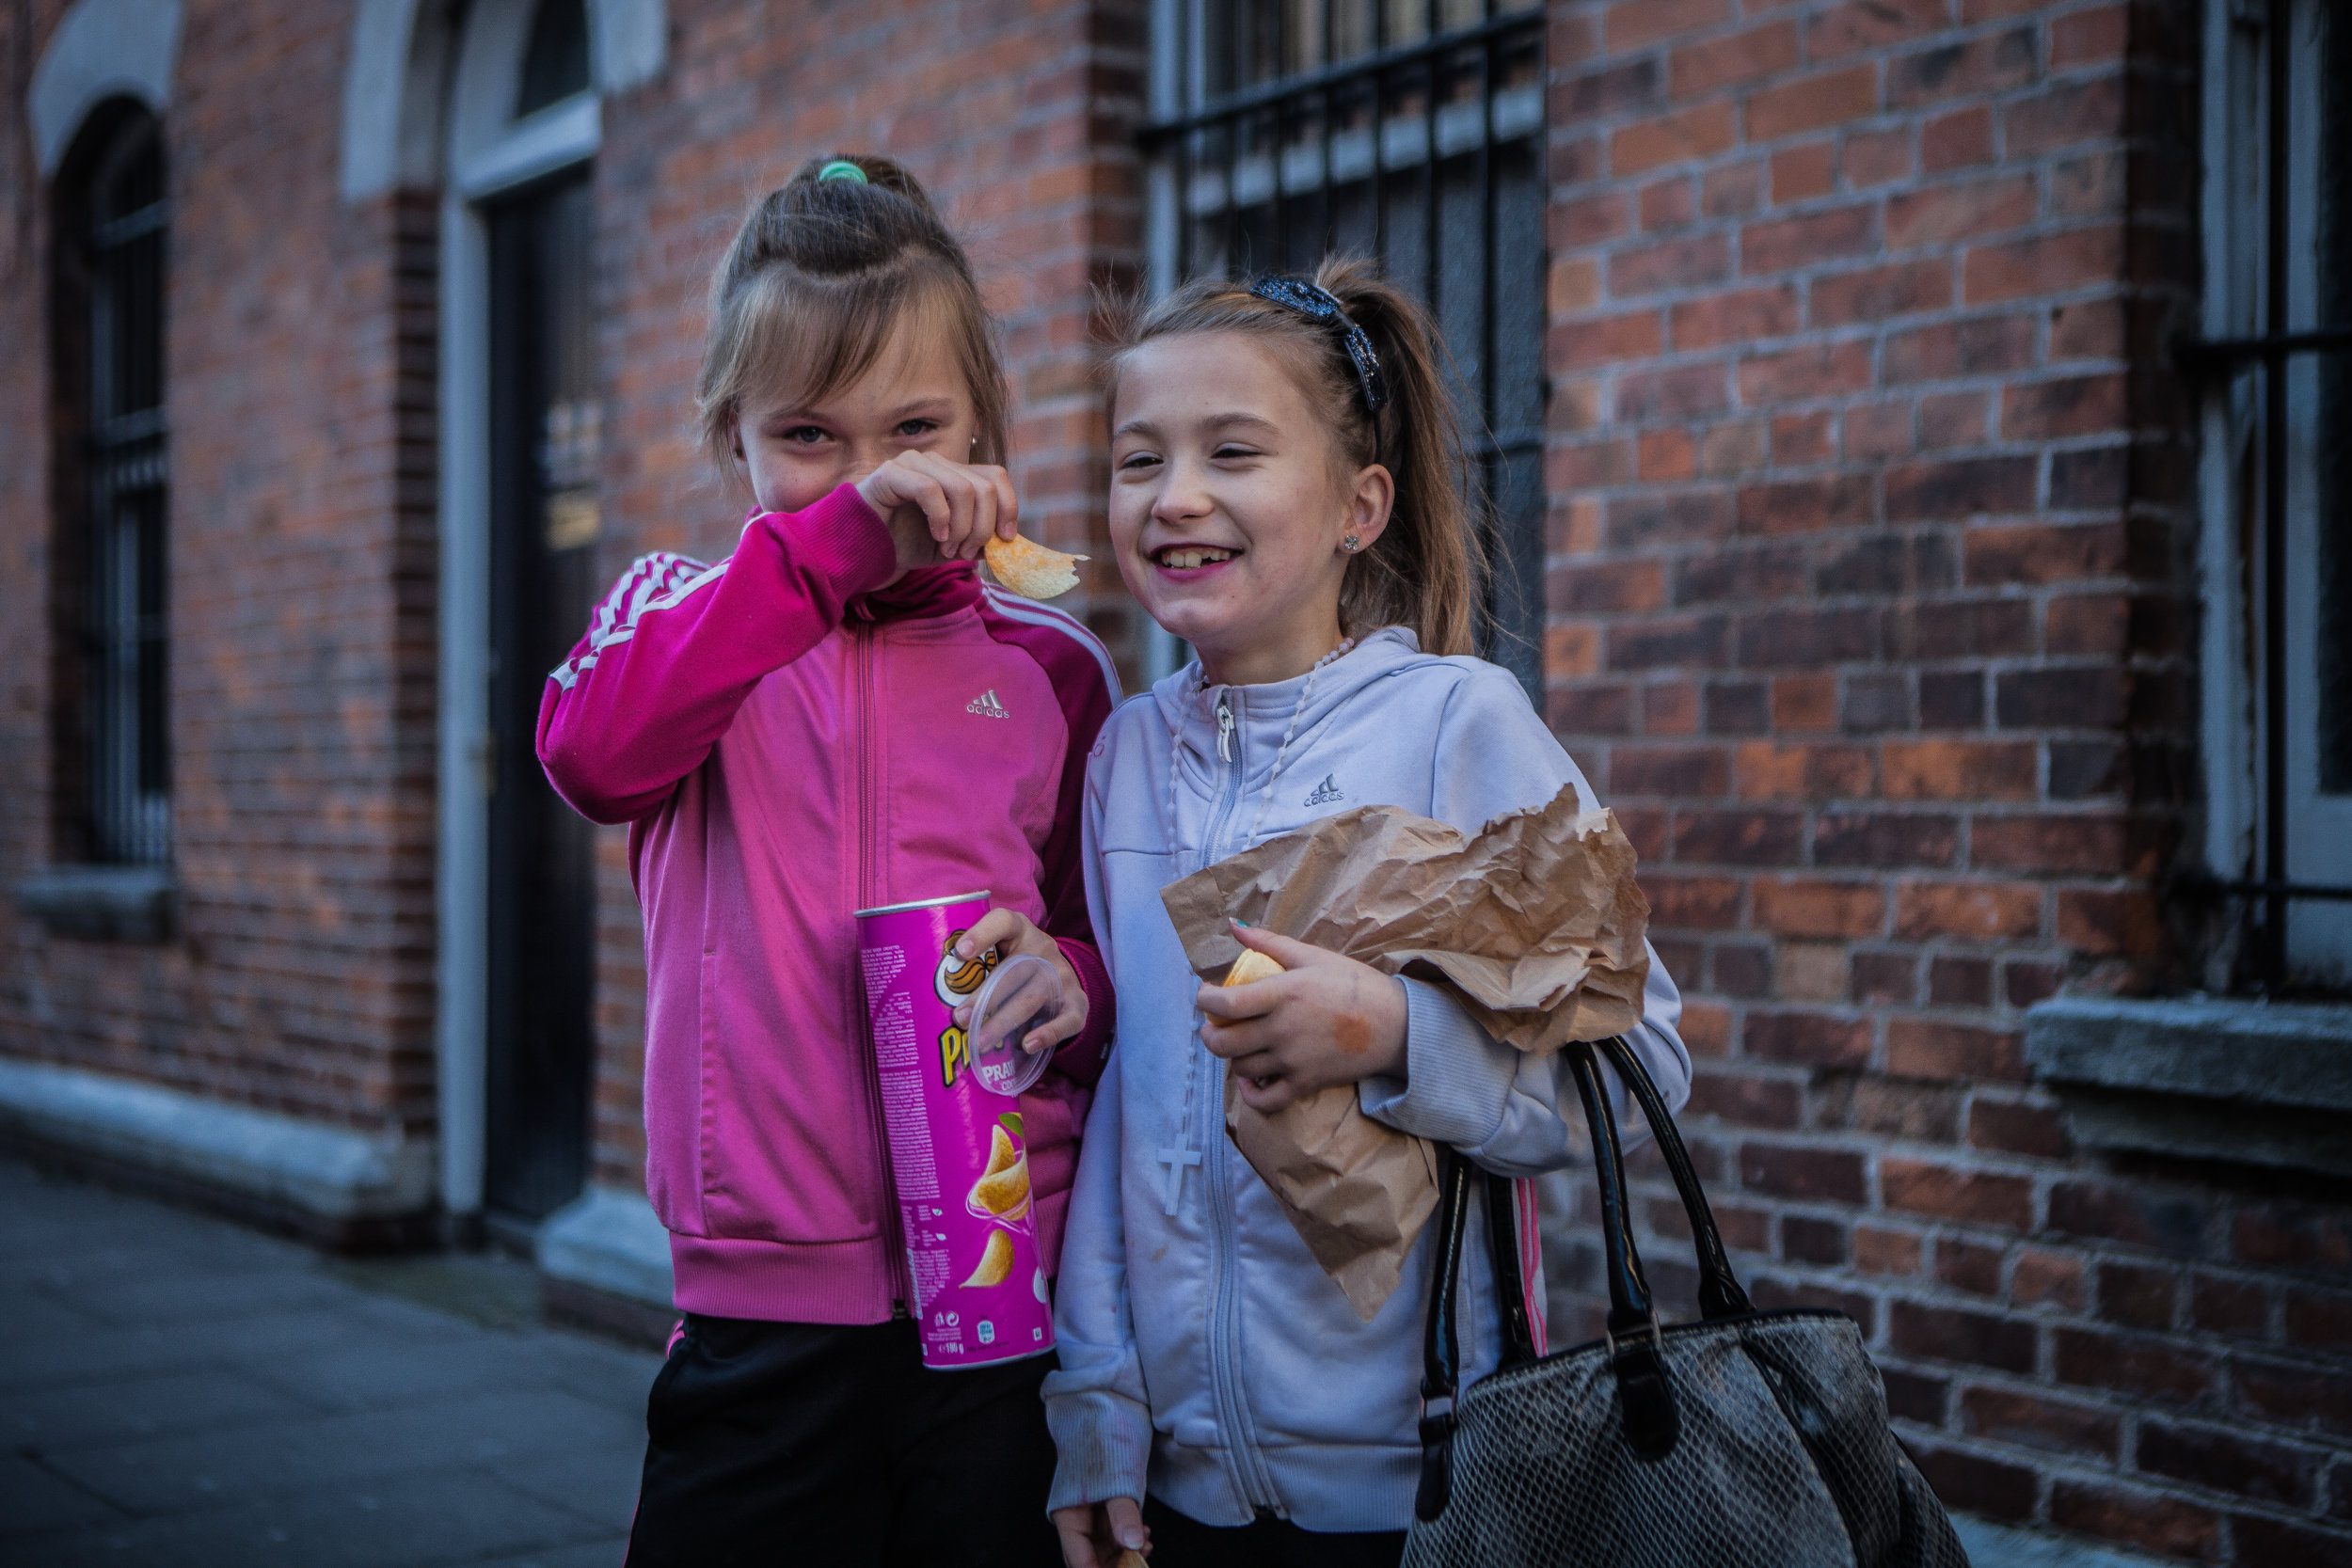 Nicole and Celina had just eaten their Sunday lunch but that didn't stop them from launching into a box of pringles (Which nicely matched her attire!?